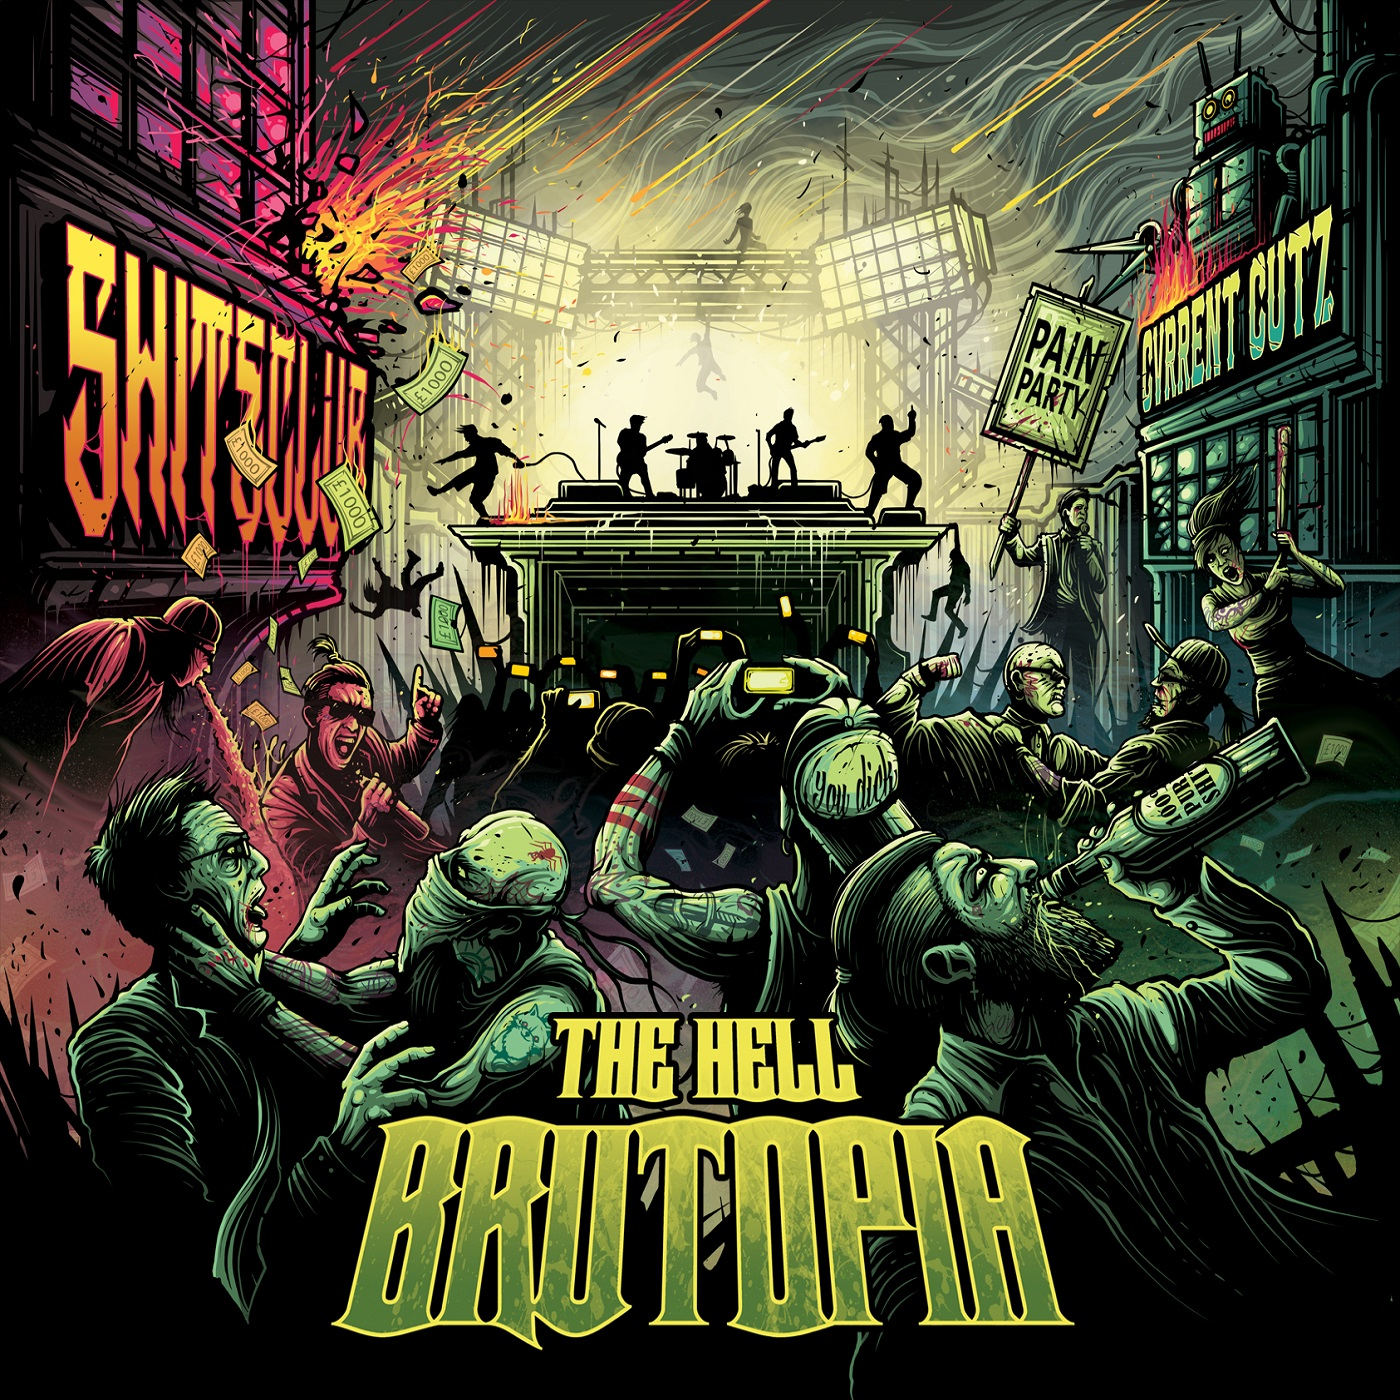 The Hell – Brutopia Review